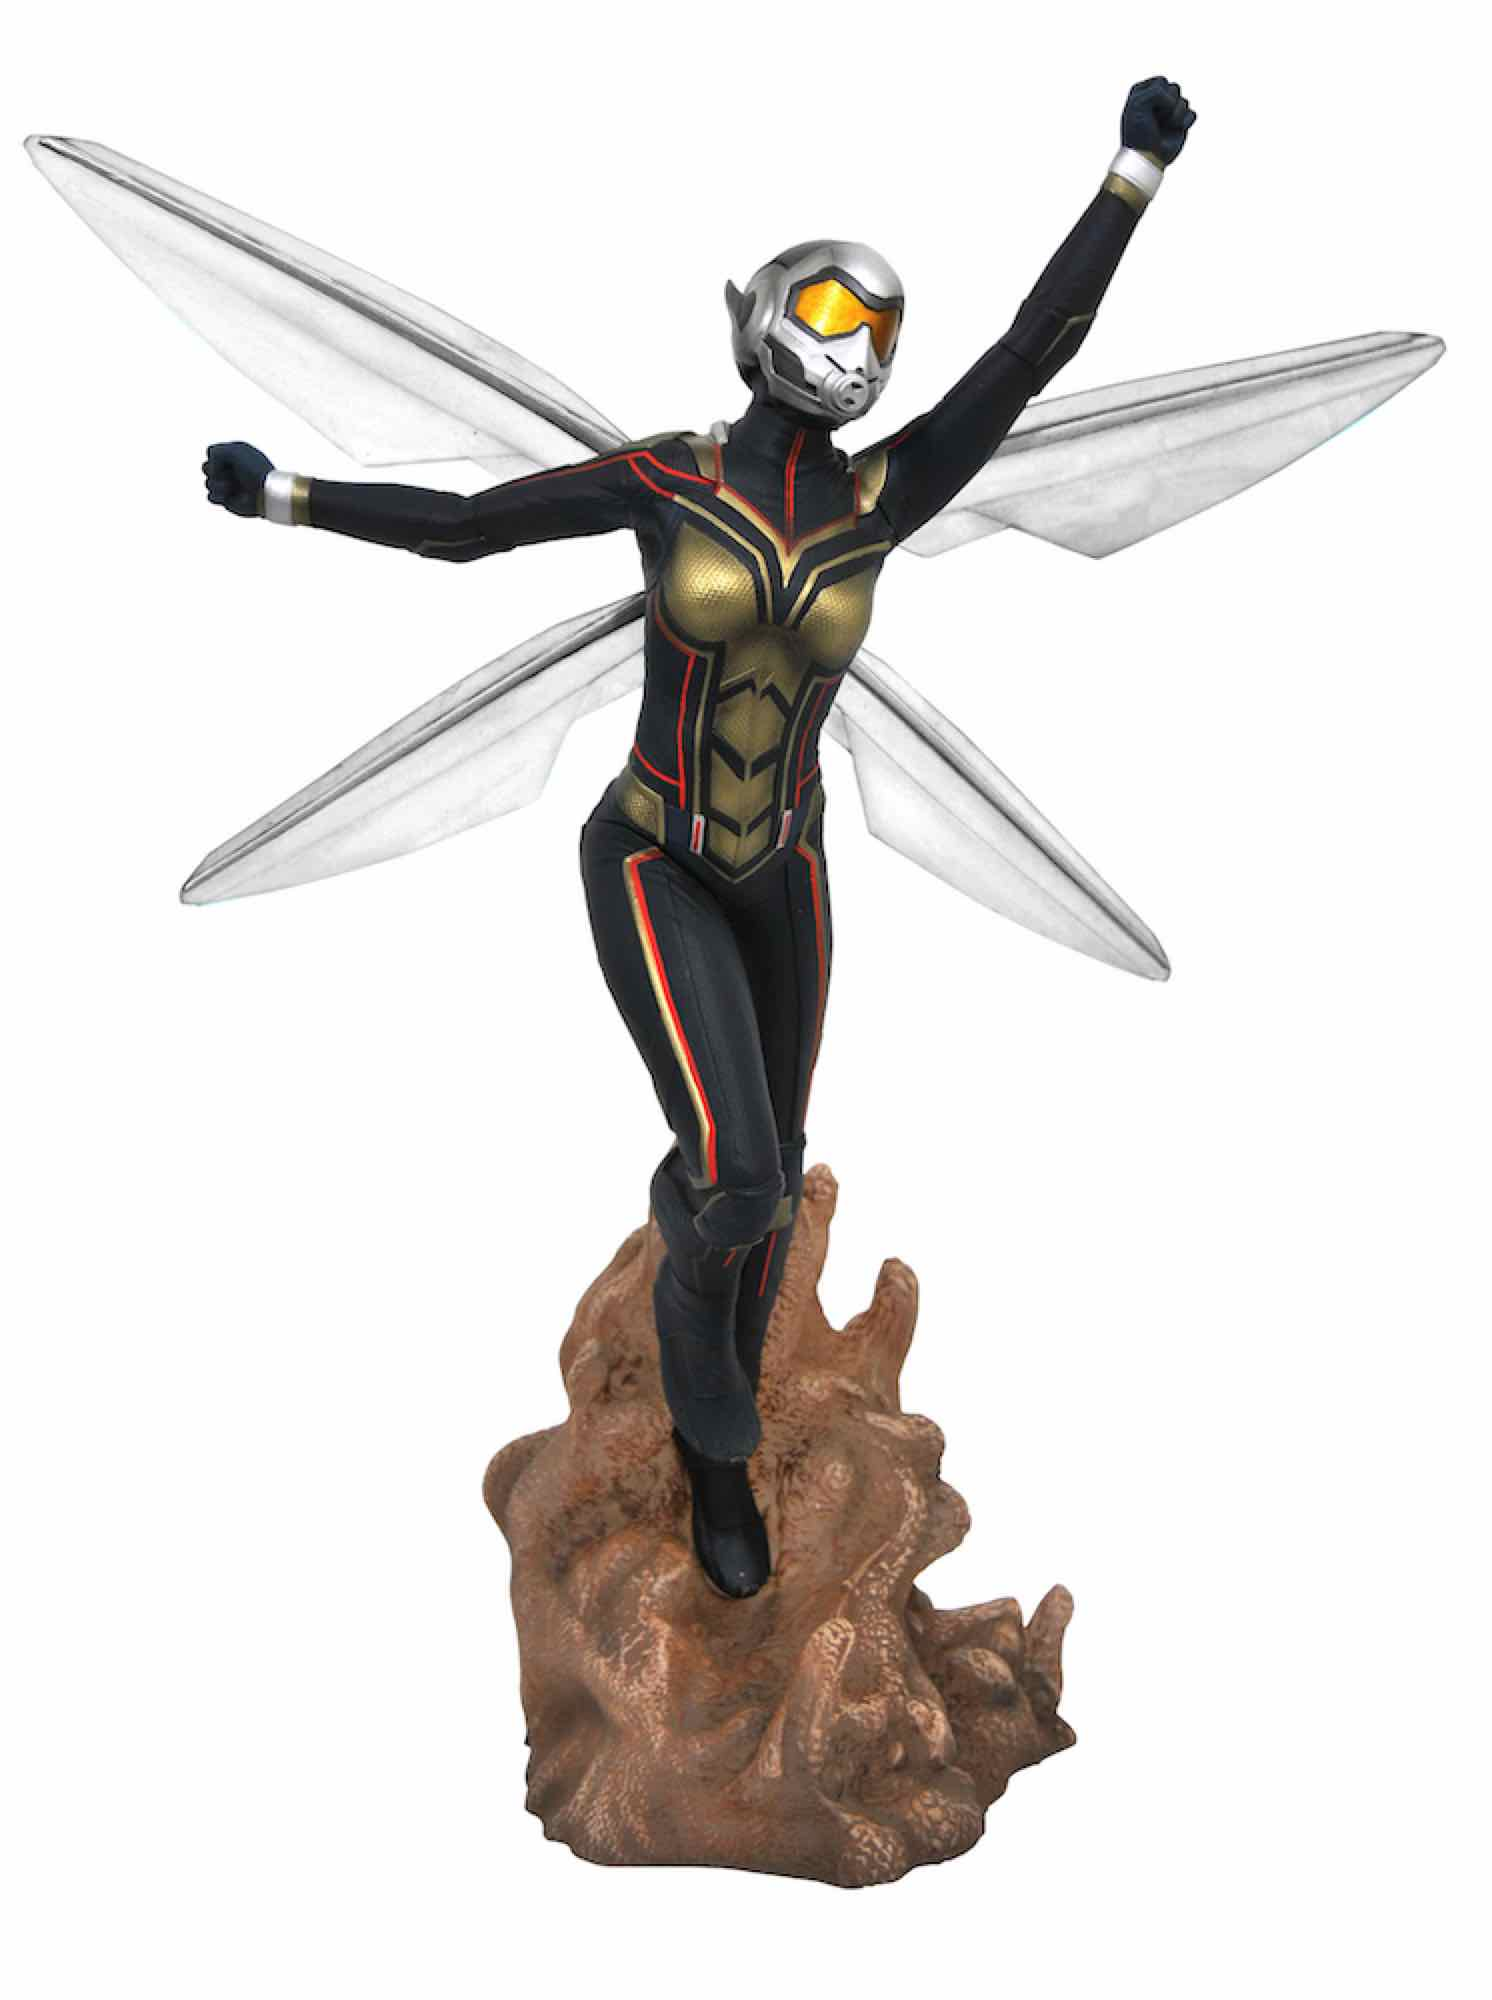 THE WASP FIGURA 23 CM PVC DIORAMA ANT-MAN & THE WASP MOVIE MARVEL MOVIE GALLERY